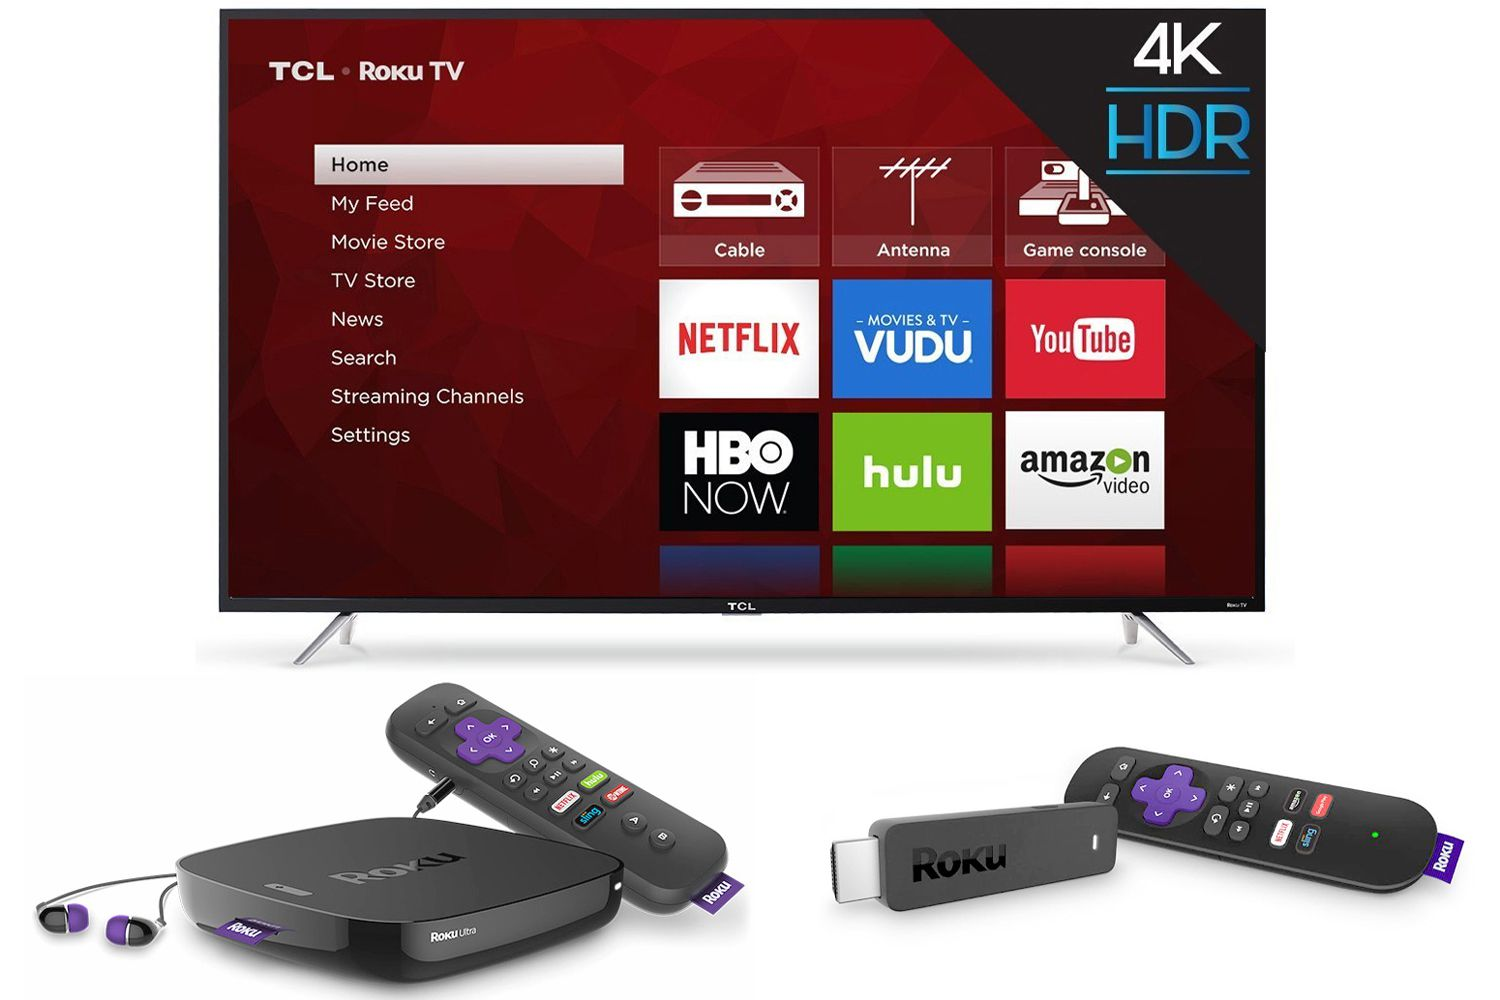 Roku TV, Box, and Streaming Stick Examples